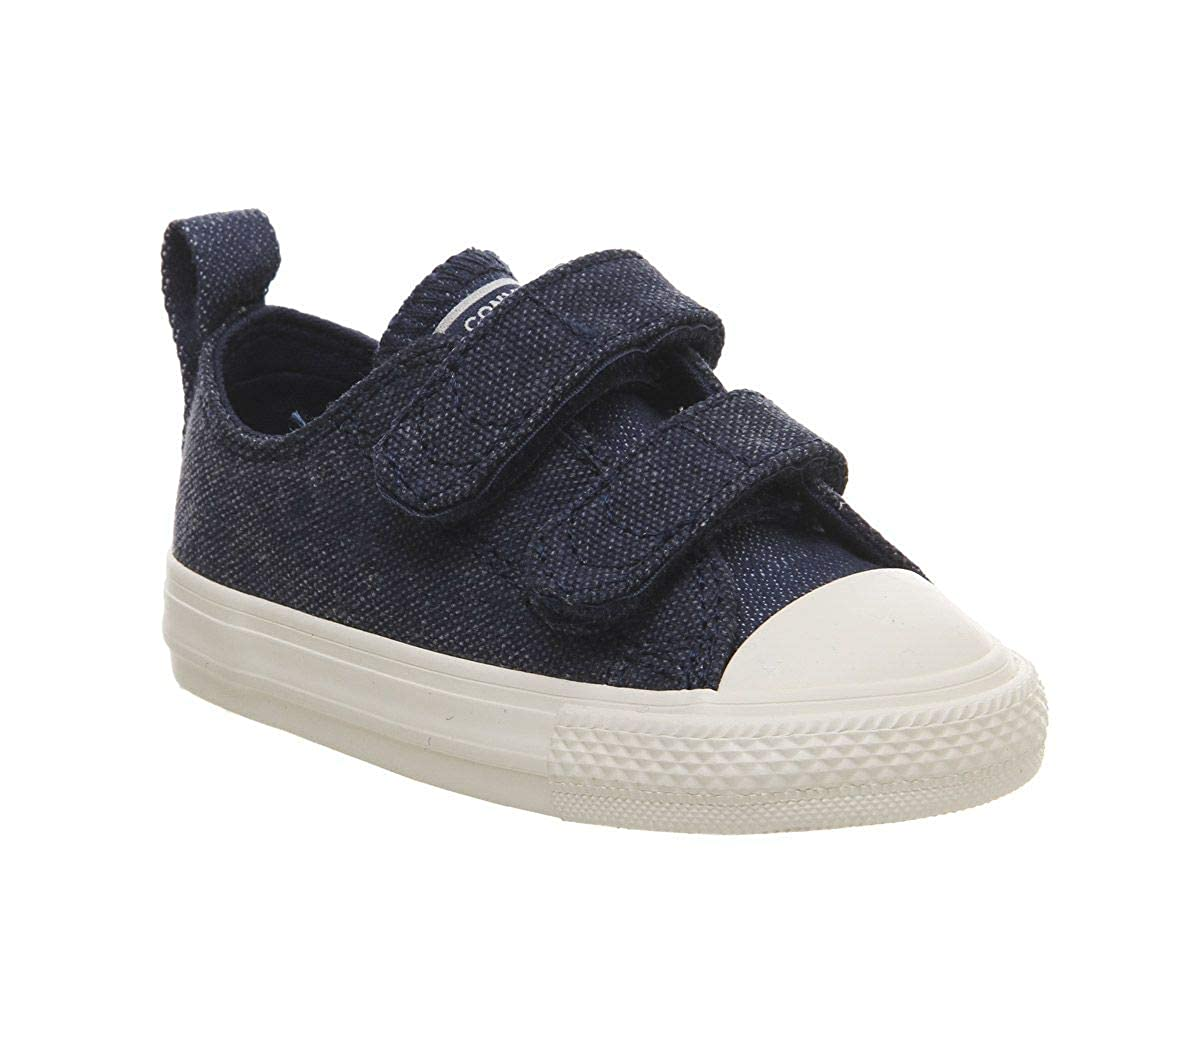 b75f50a44 Converse Kids  Chuck Taylor 2v Ox (Infant Toddler)  Amazon.co.uk  Shoes    Bags